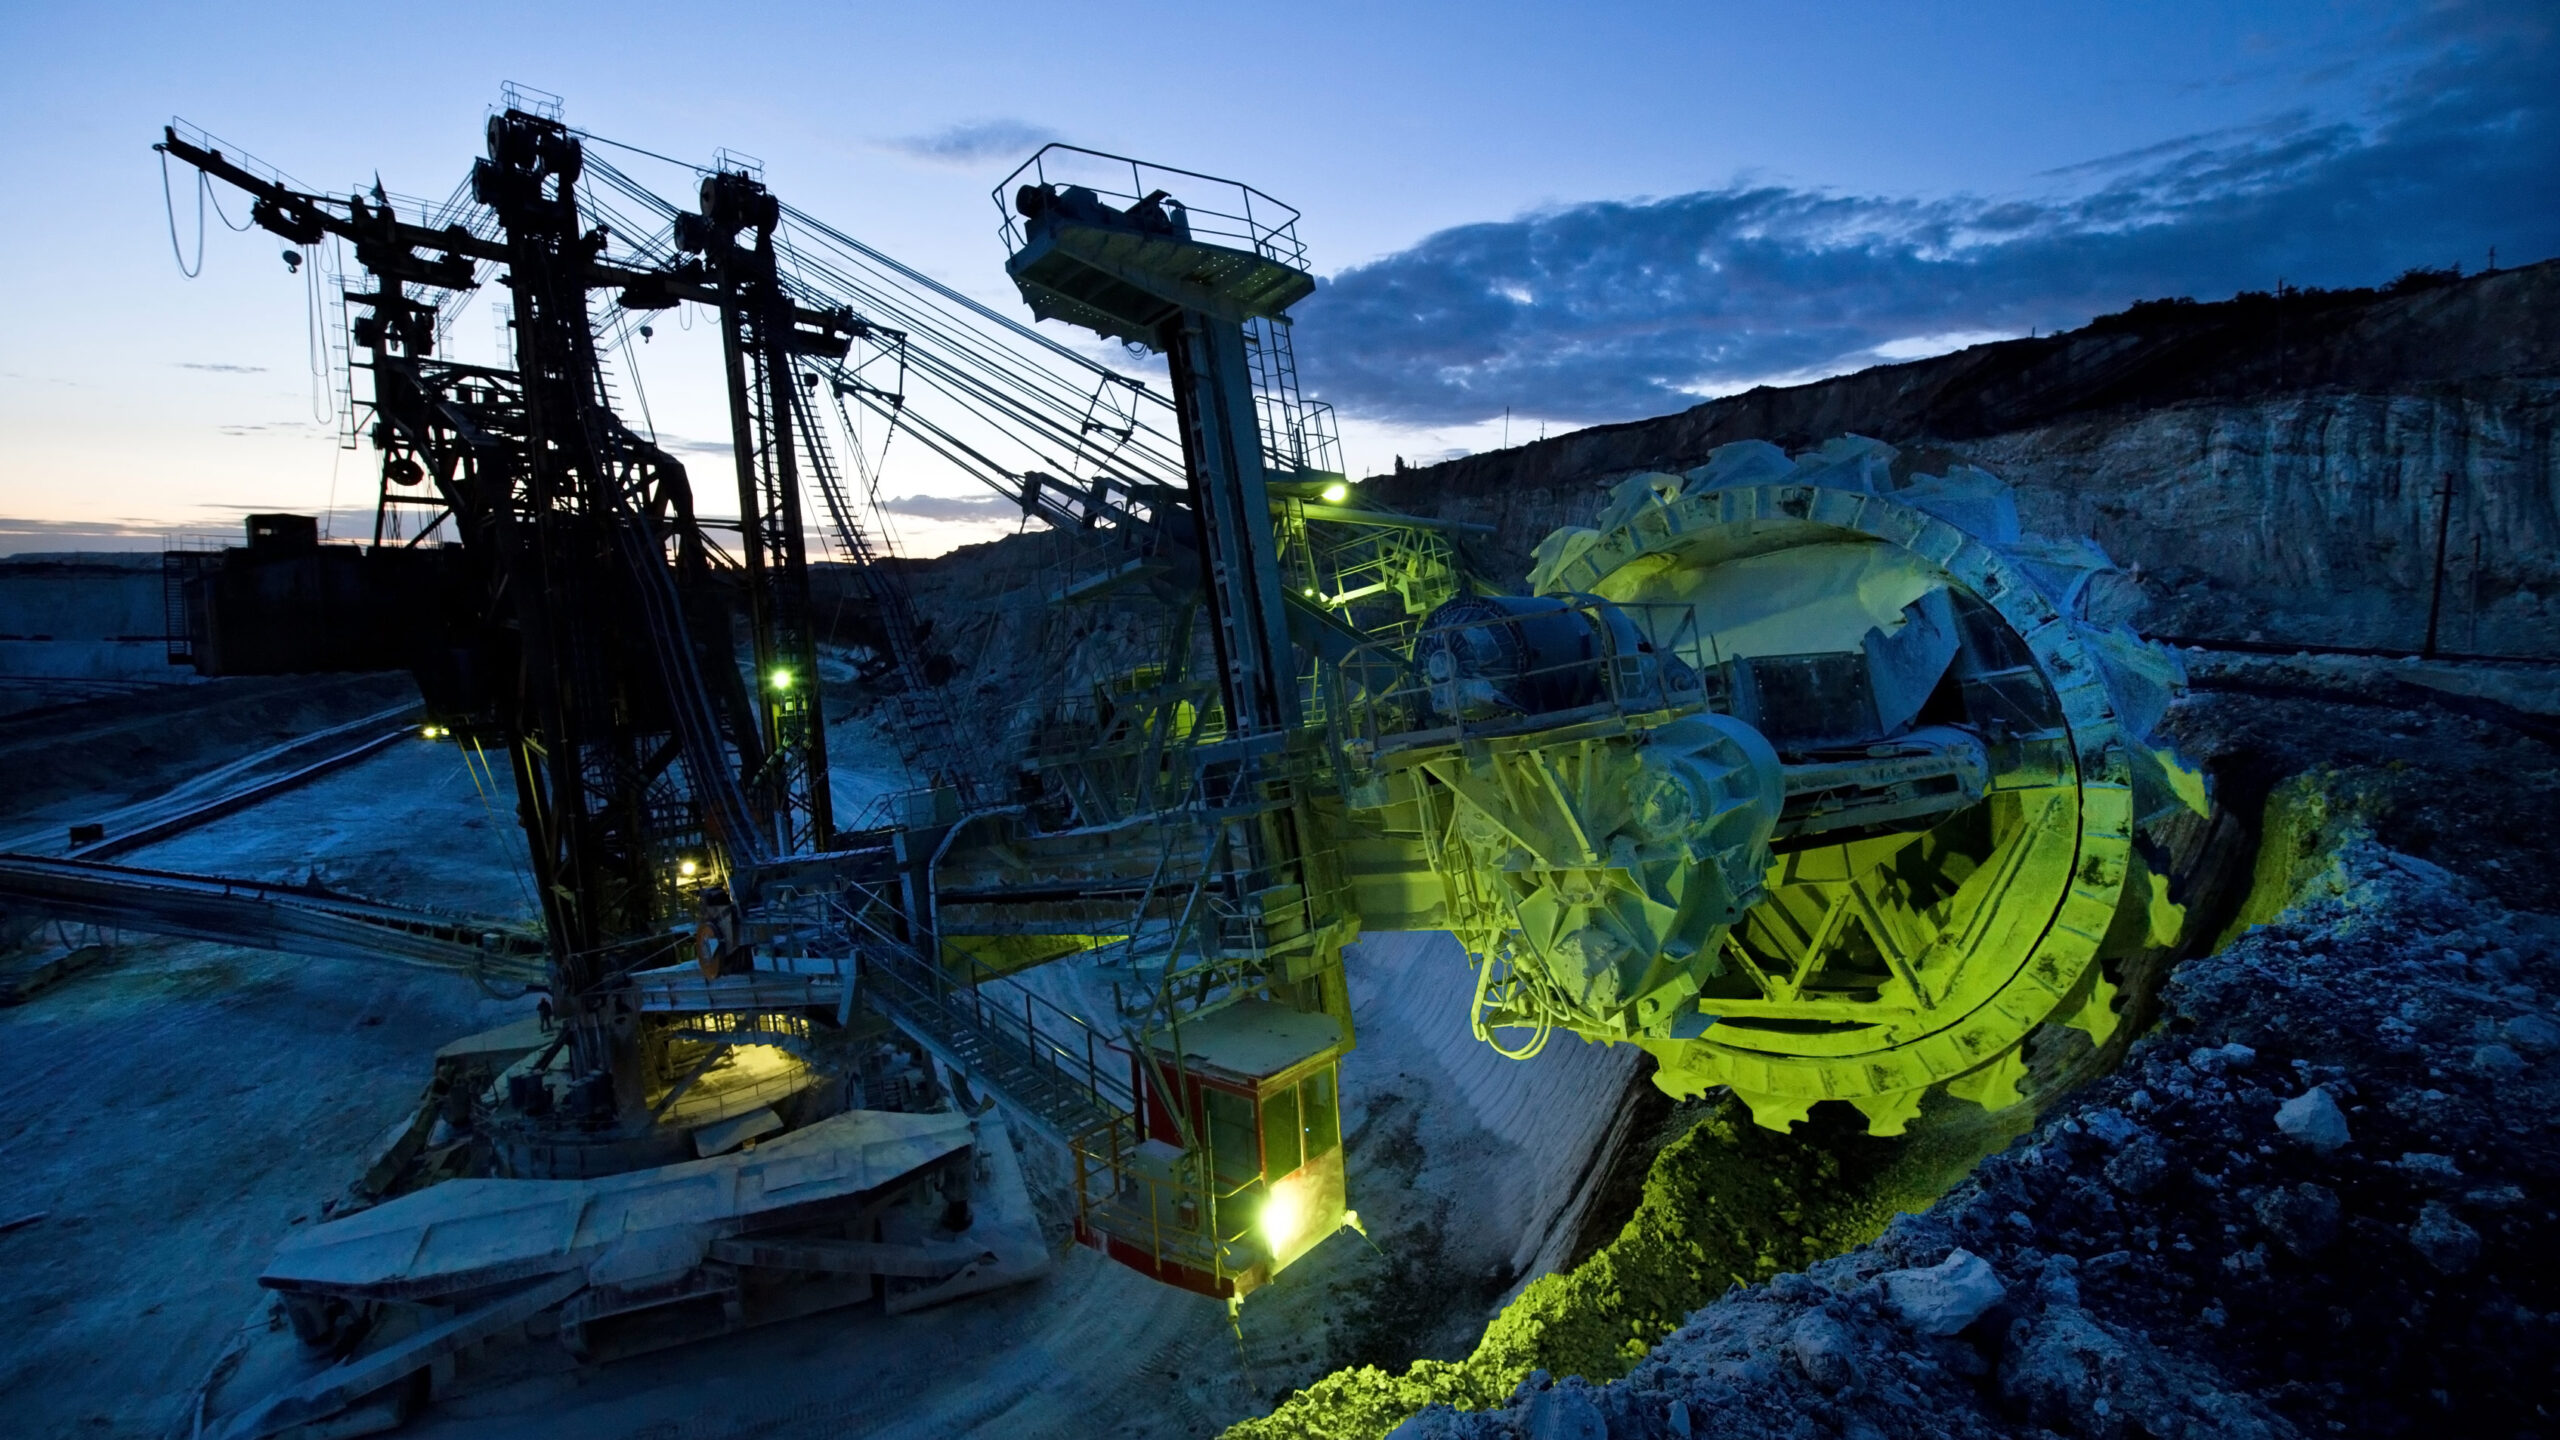 The growing importance of communication technology in mining